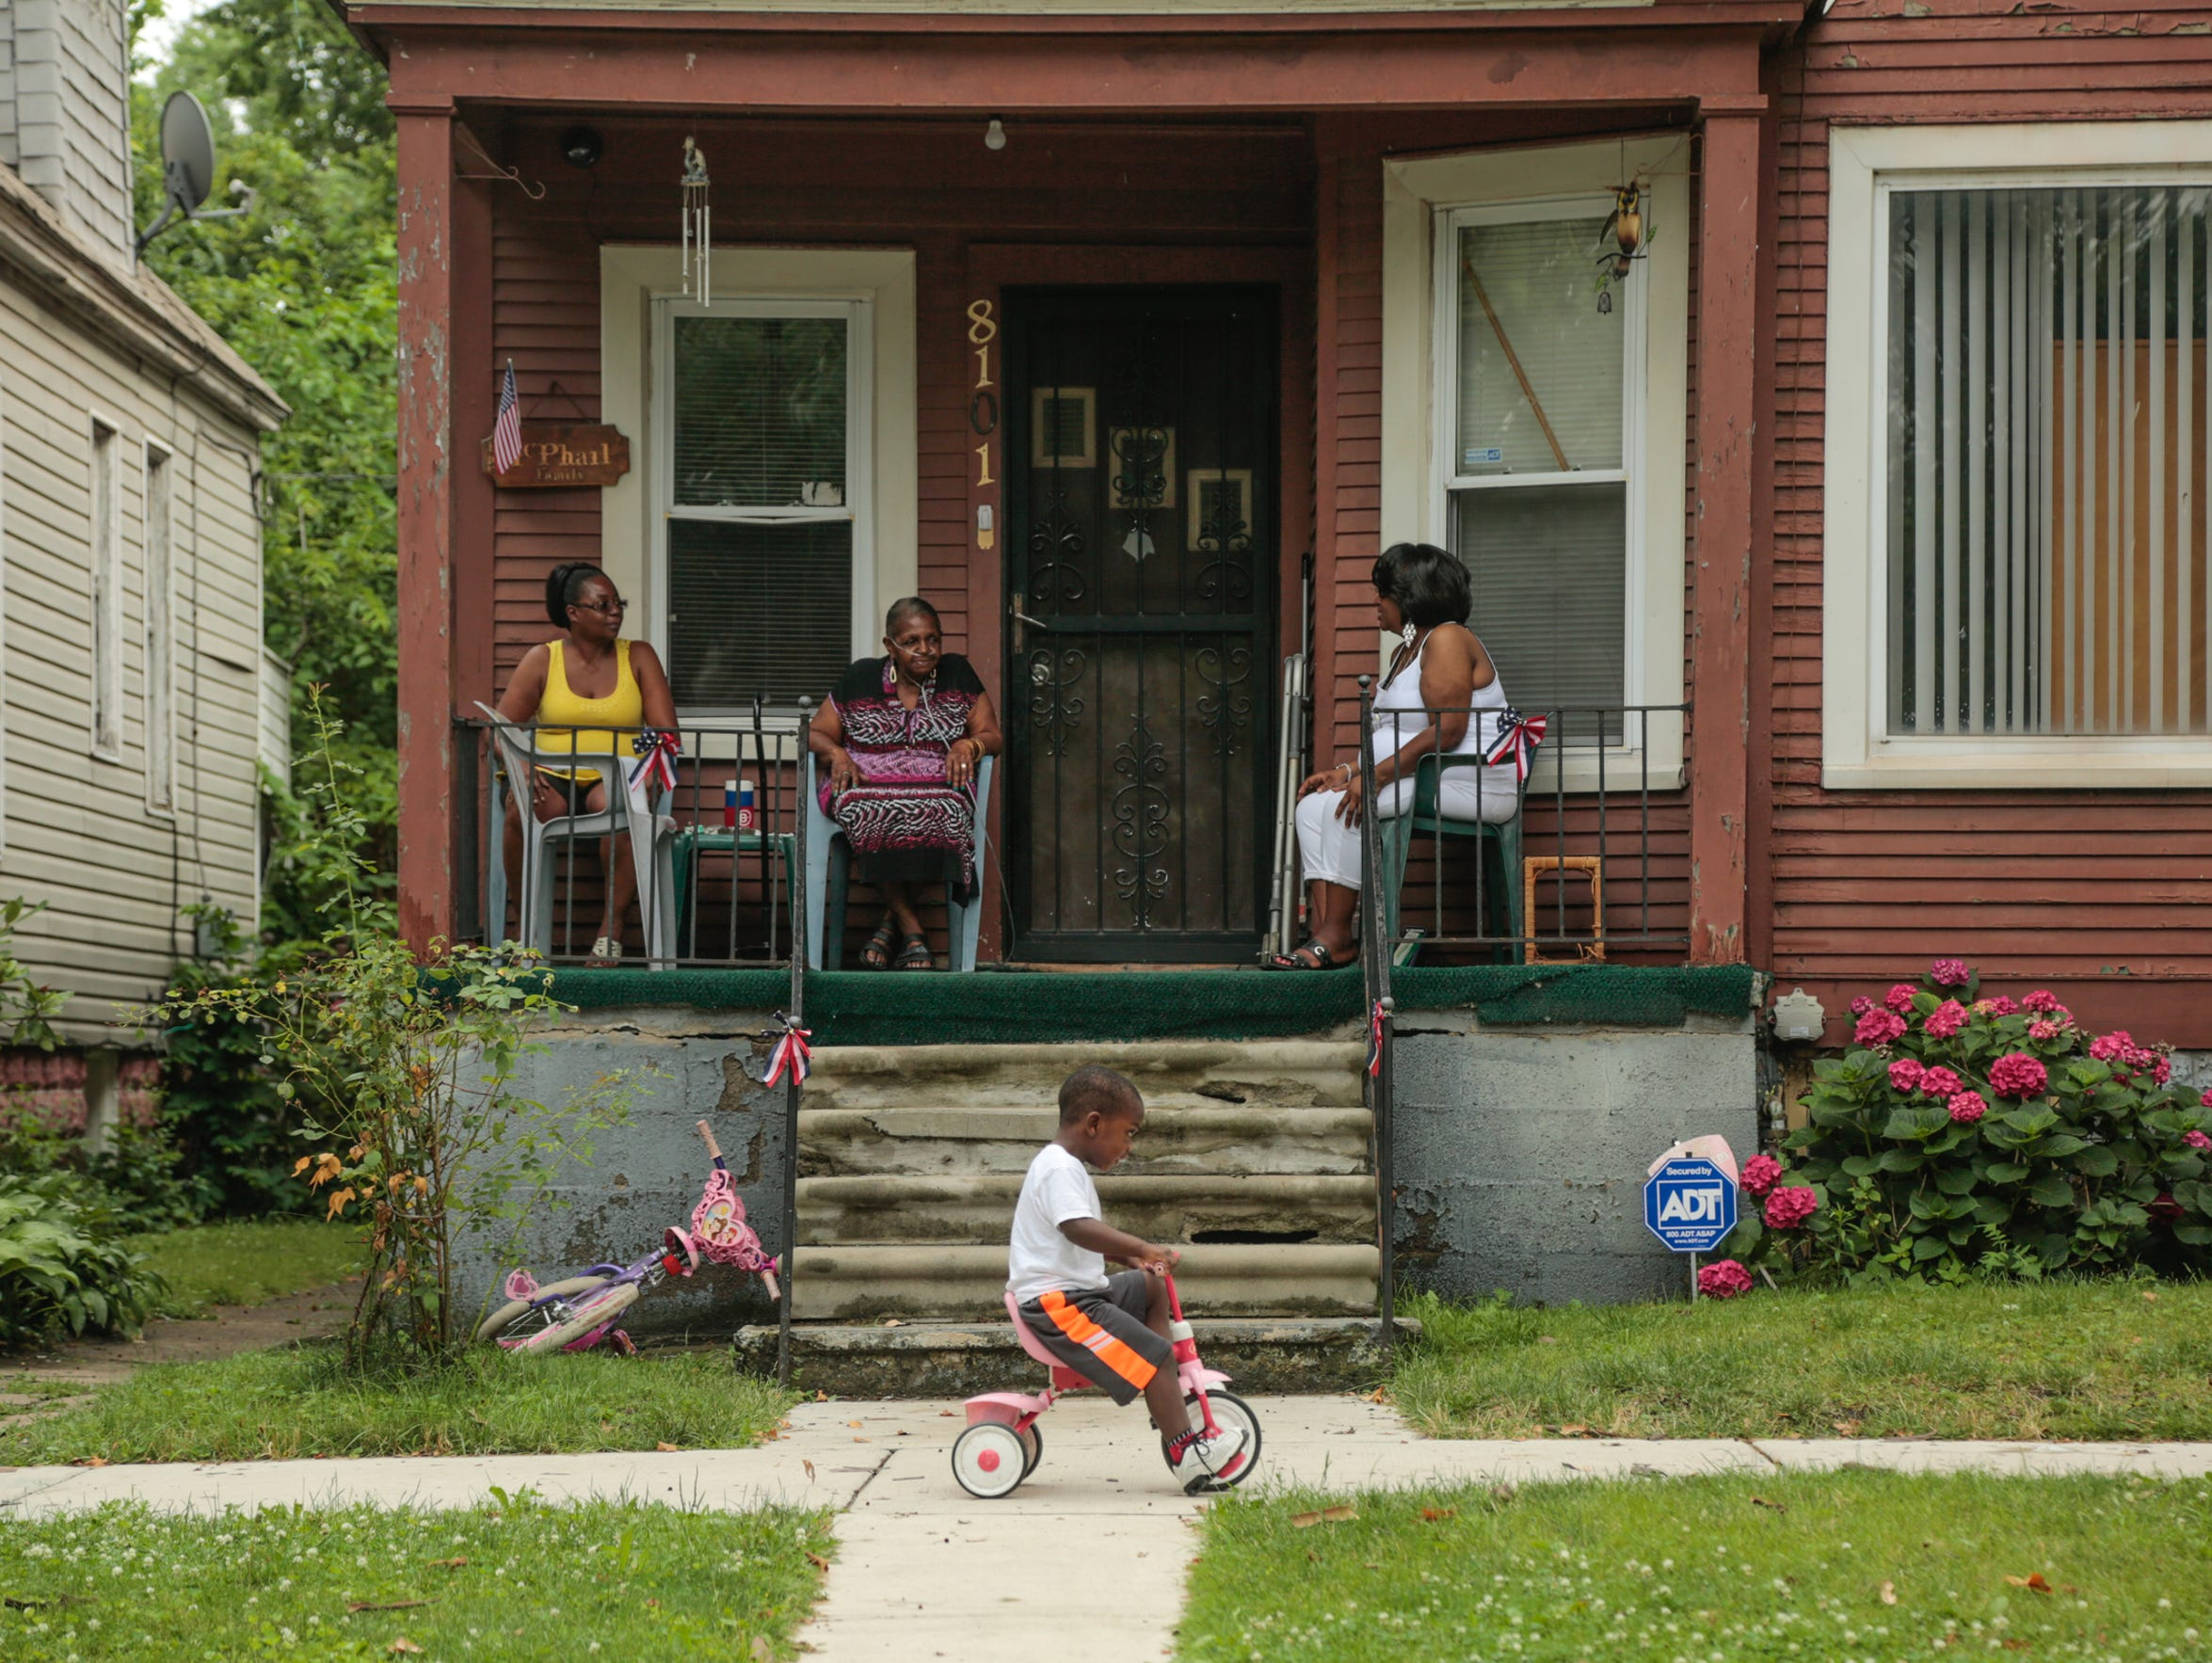 "The McPhail family sits on the front porch of their Vanderbilt Street home in Detroit's Delray neighborhood on July 12, 2017. The family has lived in the home for four decades. ""I've been wanting to go,"" Harriet said. ""But it's my mom. To her this is her home. She purchased this home. It's hers. Why should she leave it? That's how she feel about it. It's home to her."""